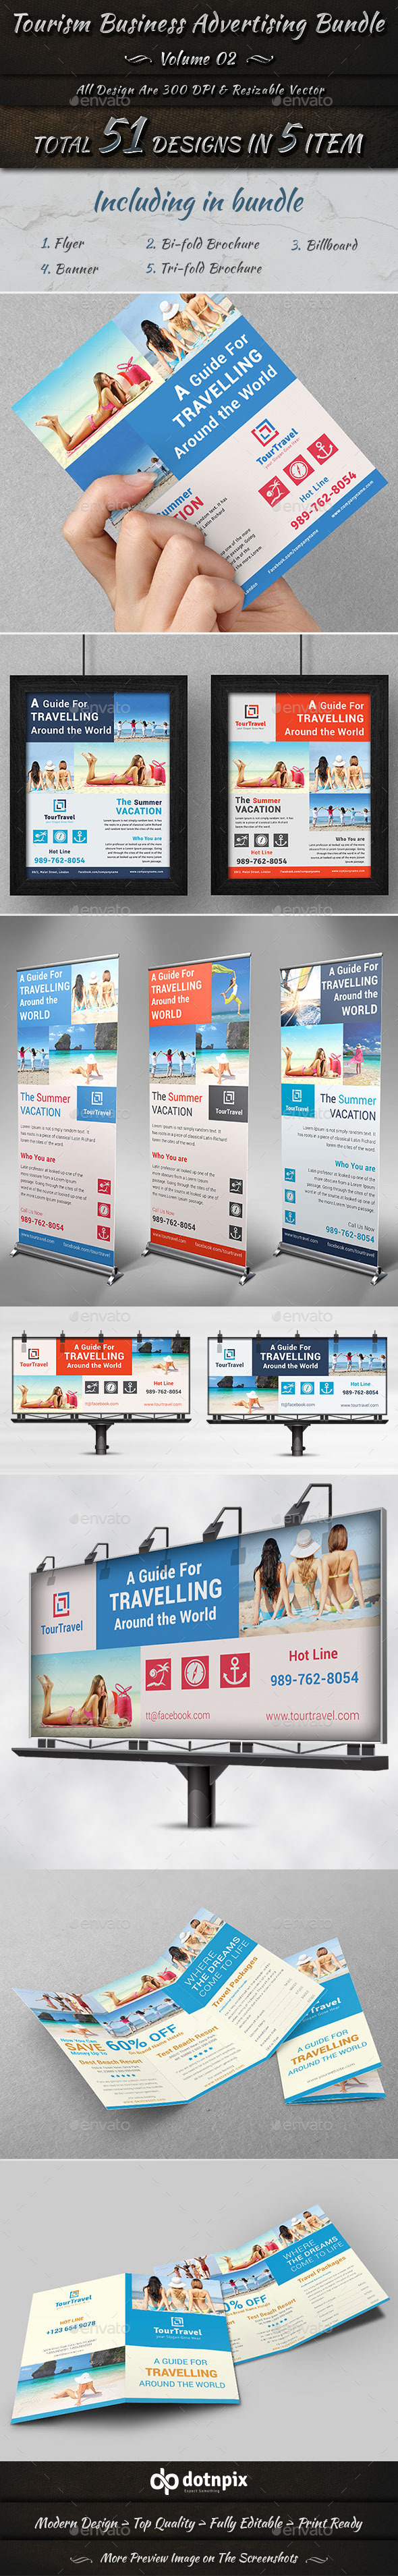 Tourism Business Advertising Bundle | Volume 2 - Corporate Flyers